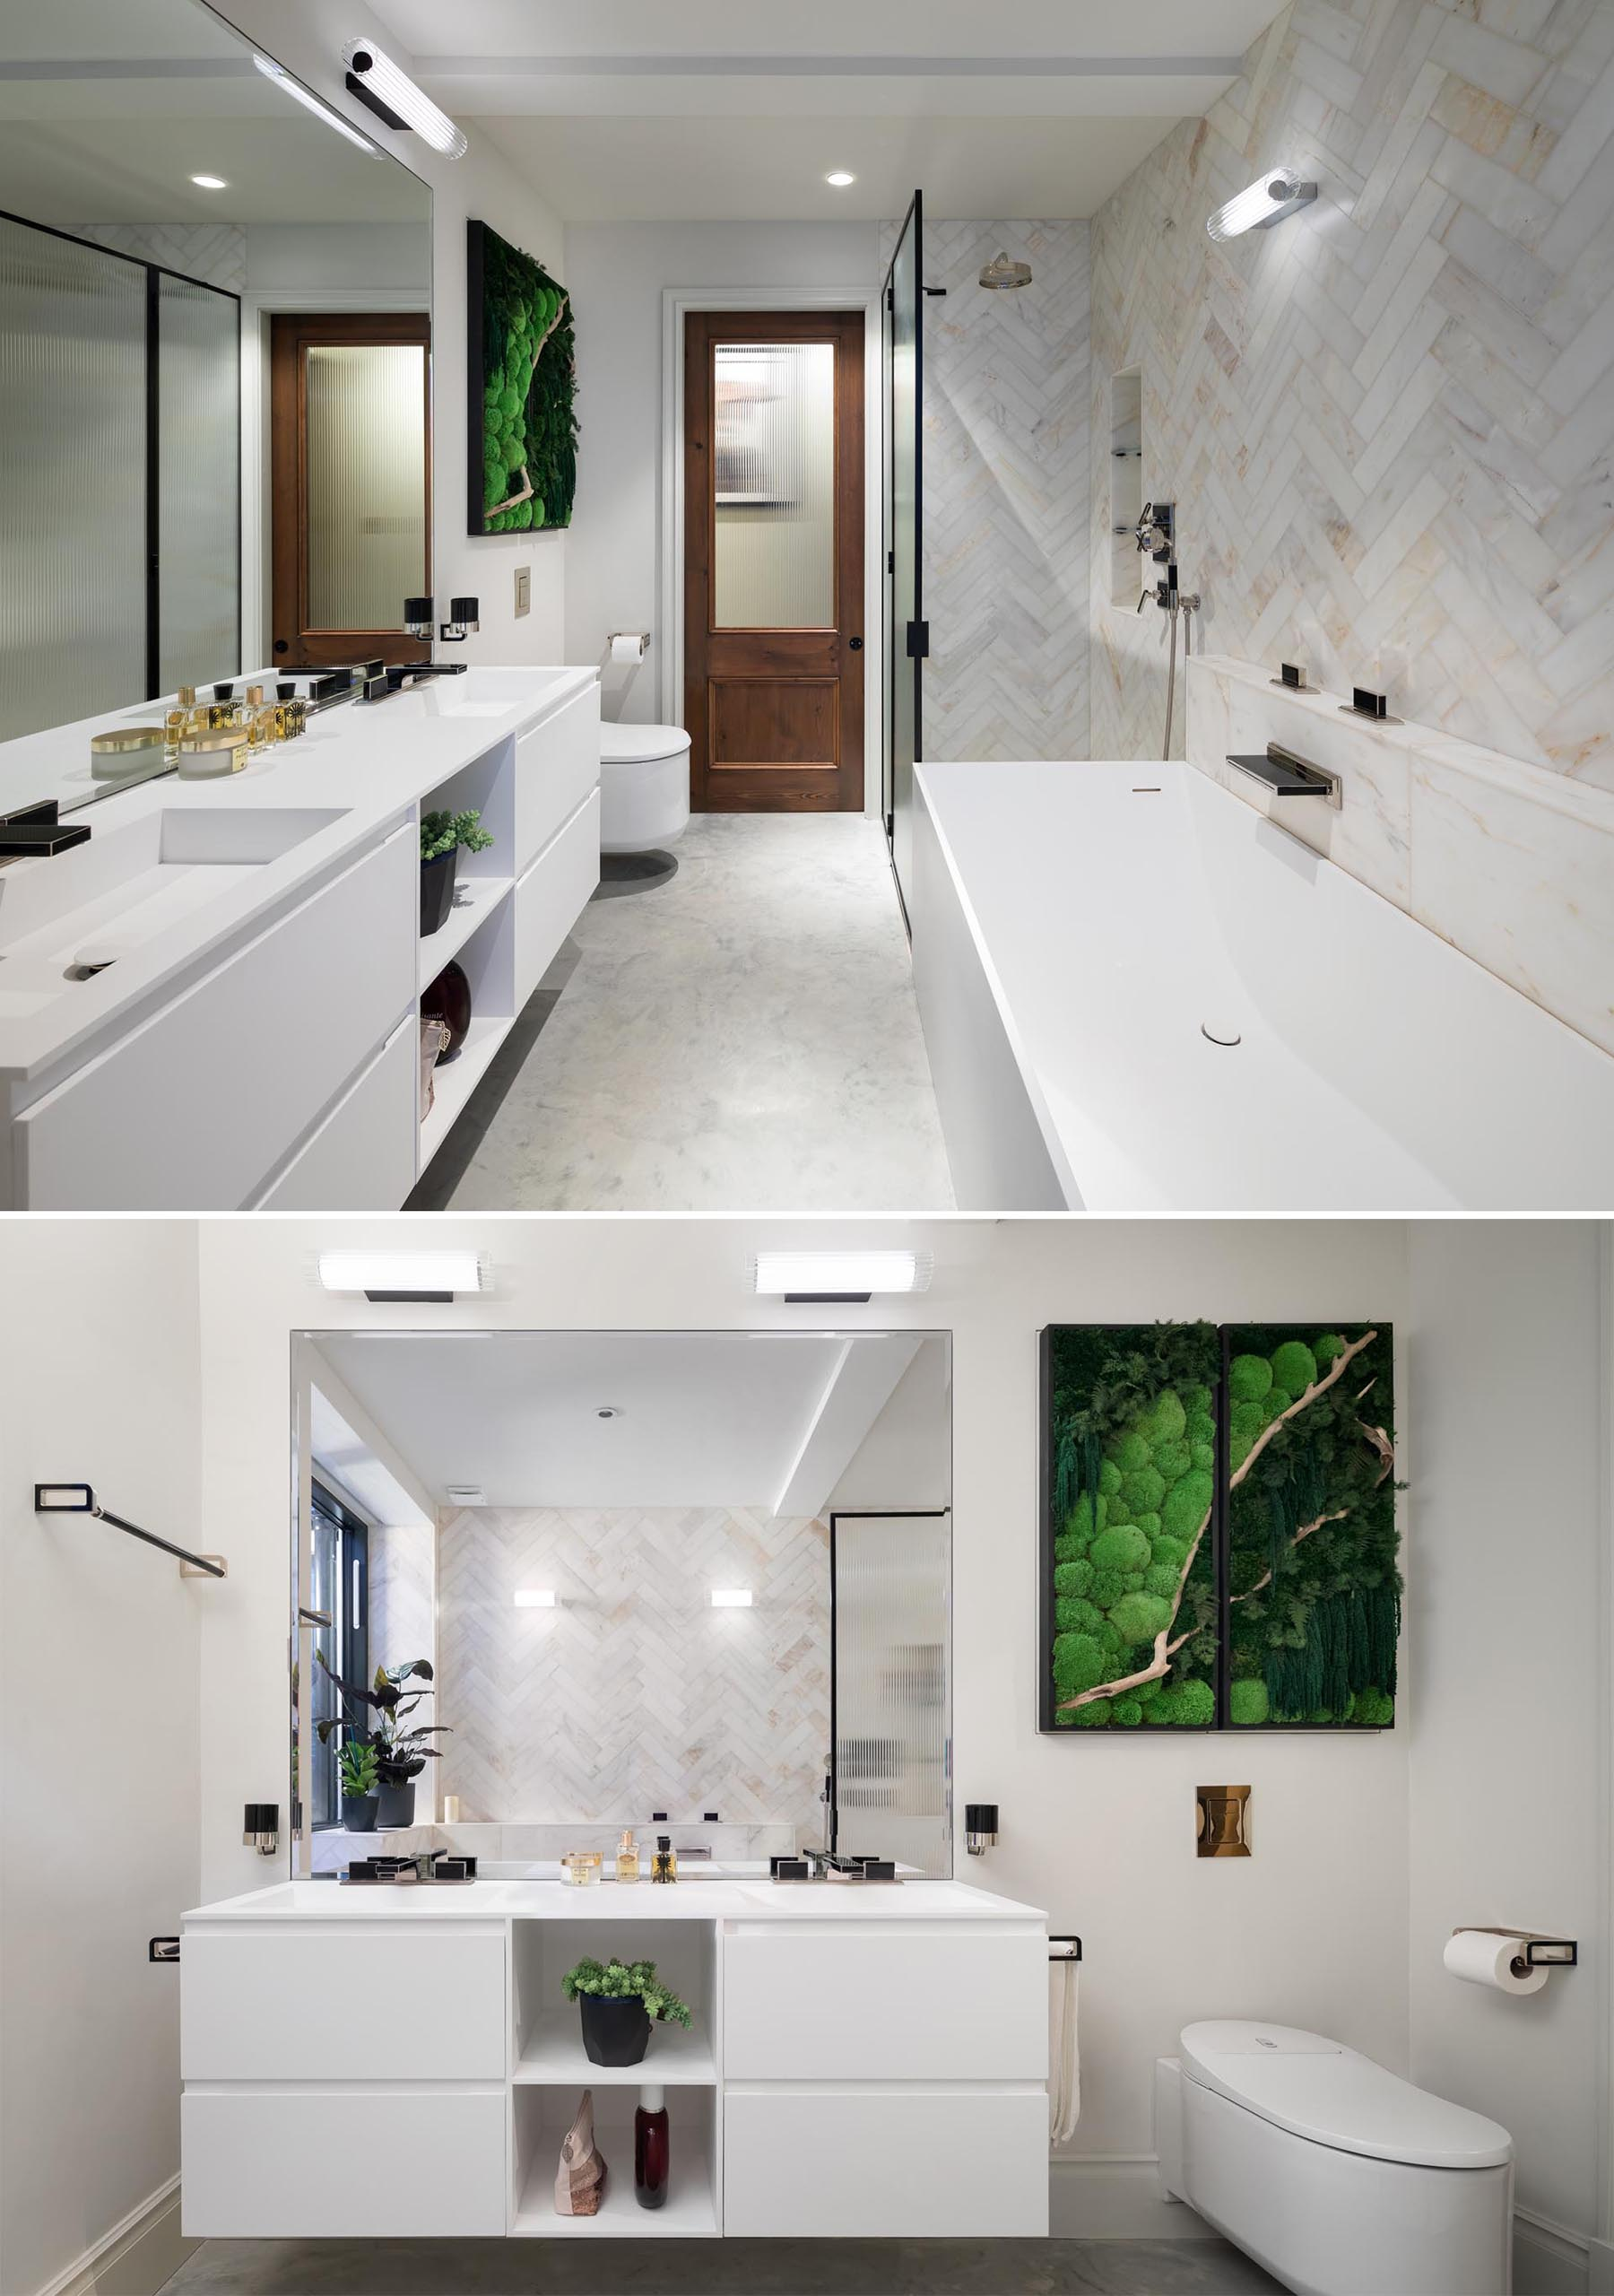 In this modern bathroom, there's a white vanity with dual sinks, a matching bathtub, as well as a walk-in shower and a storage cabinet that hangs above the bathroom and adds a natural design element.